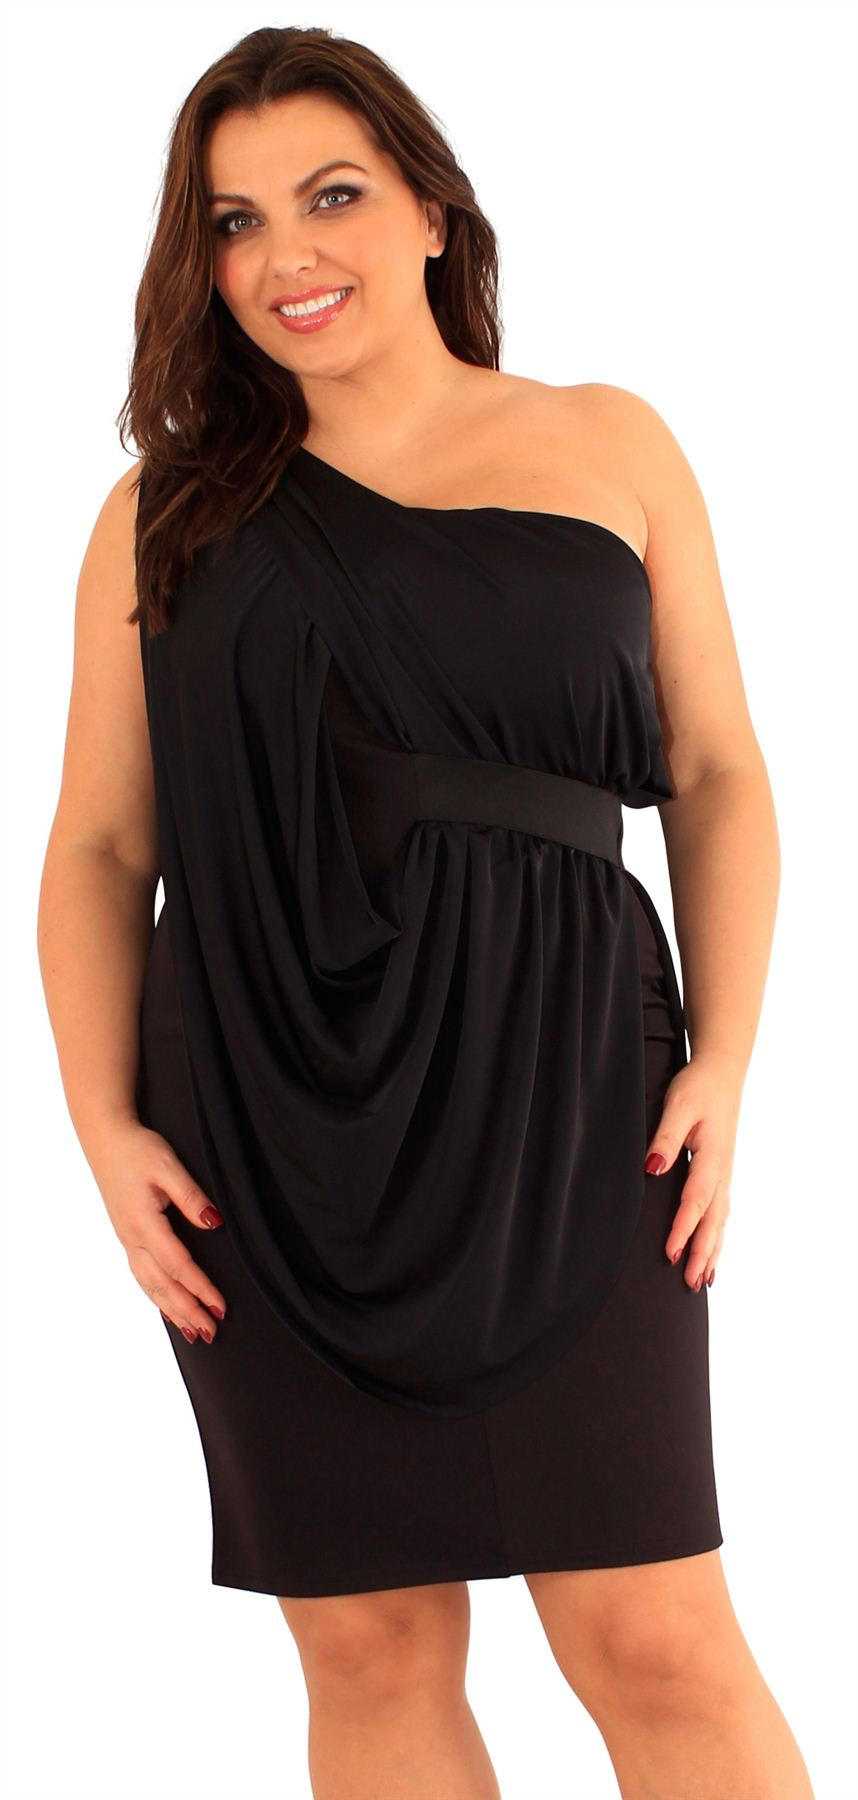 New Ladies Plus Size Belted Body Con One Shoulder Pencil Going Out Dress 18-24